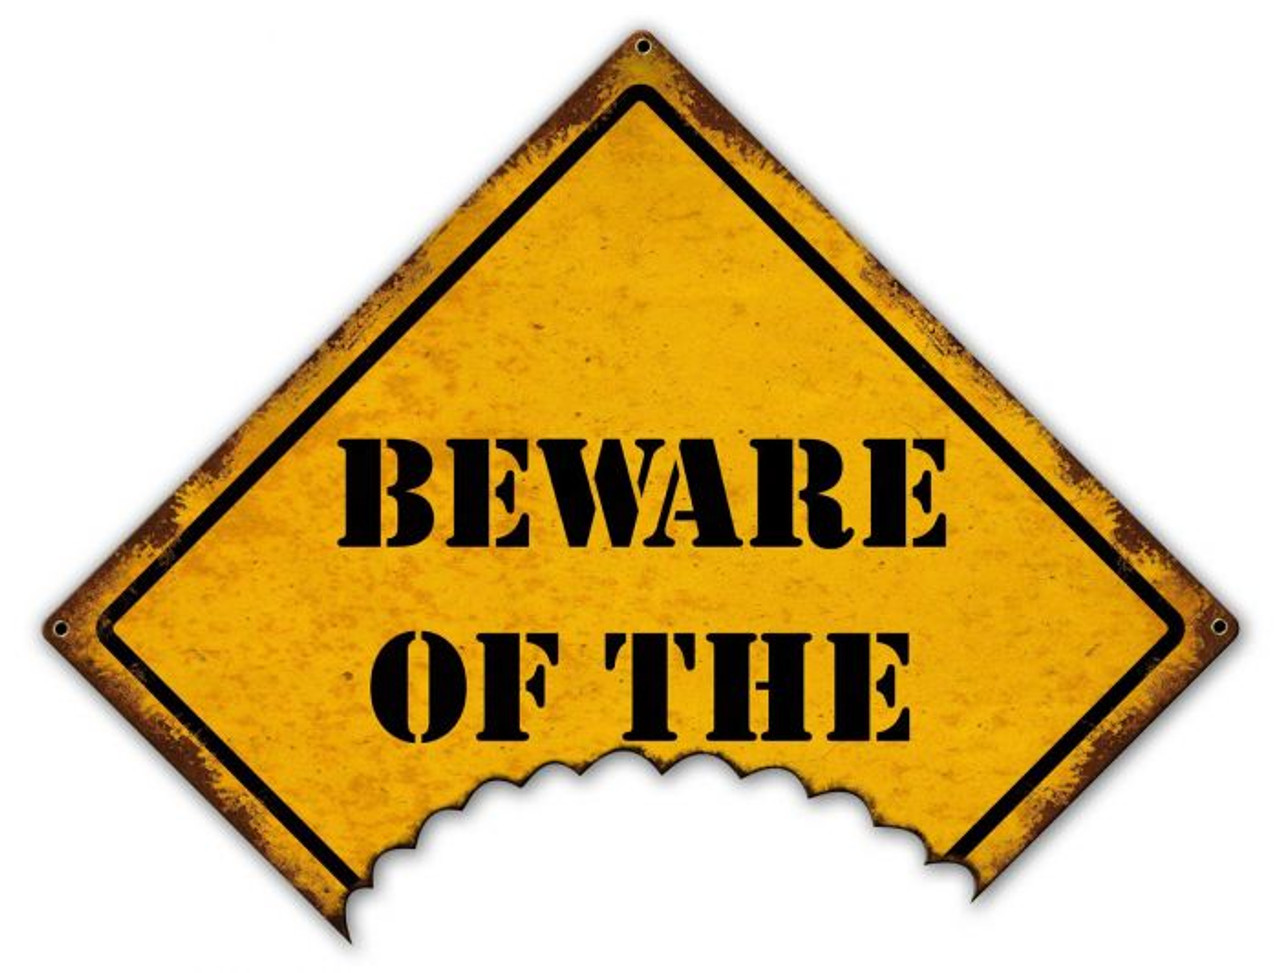 Beware Of The Metal Sign 24 x 18 Inches